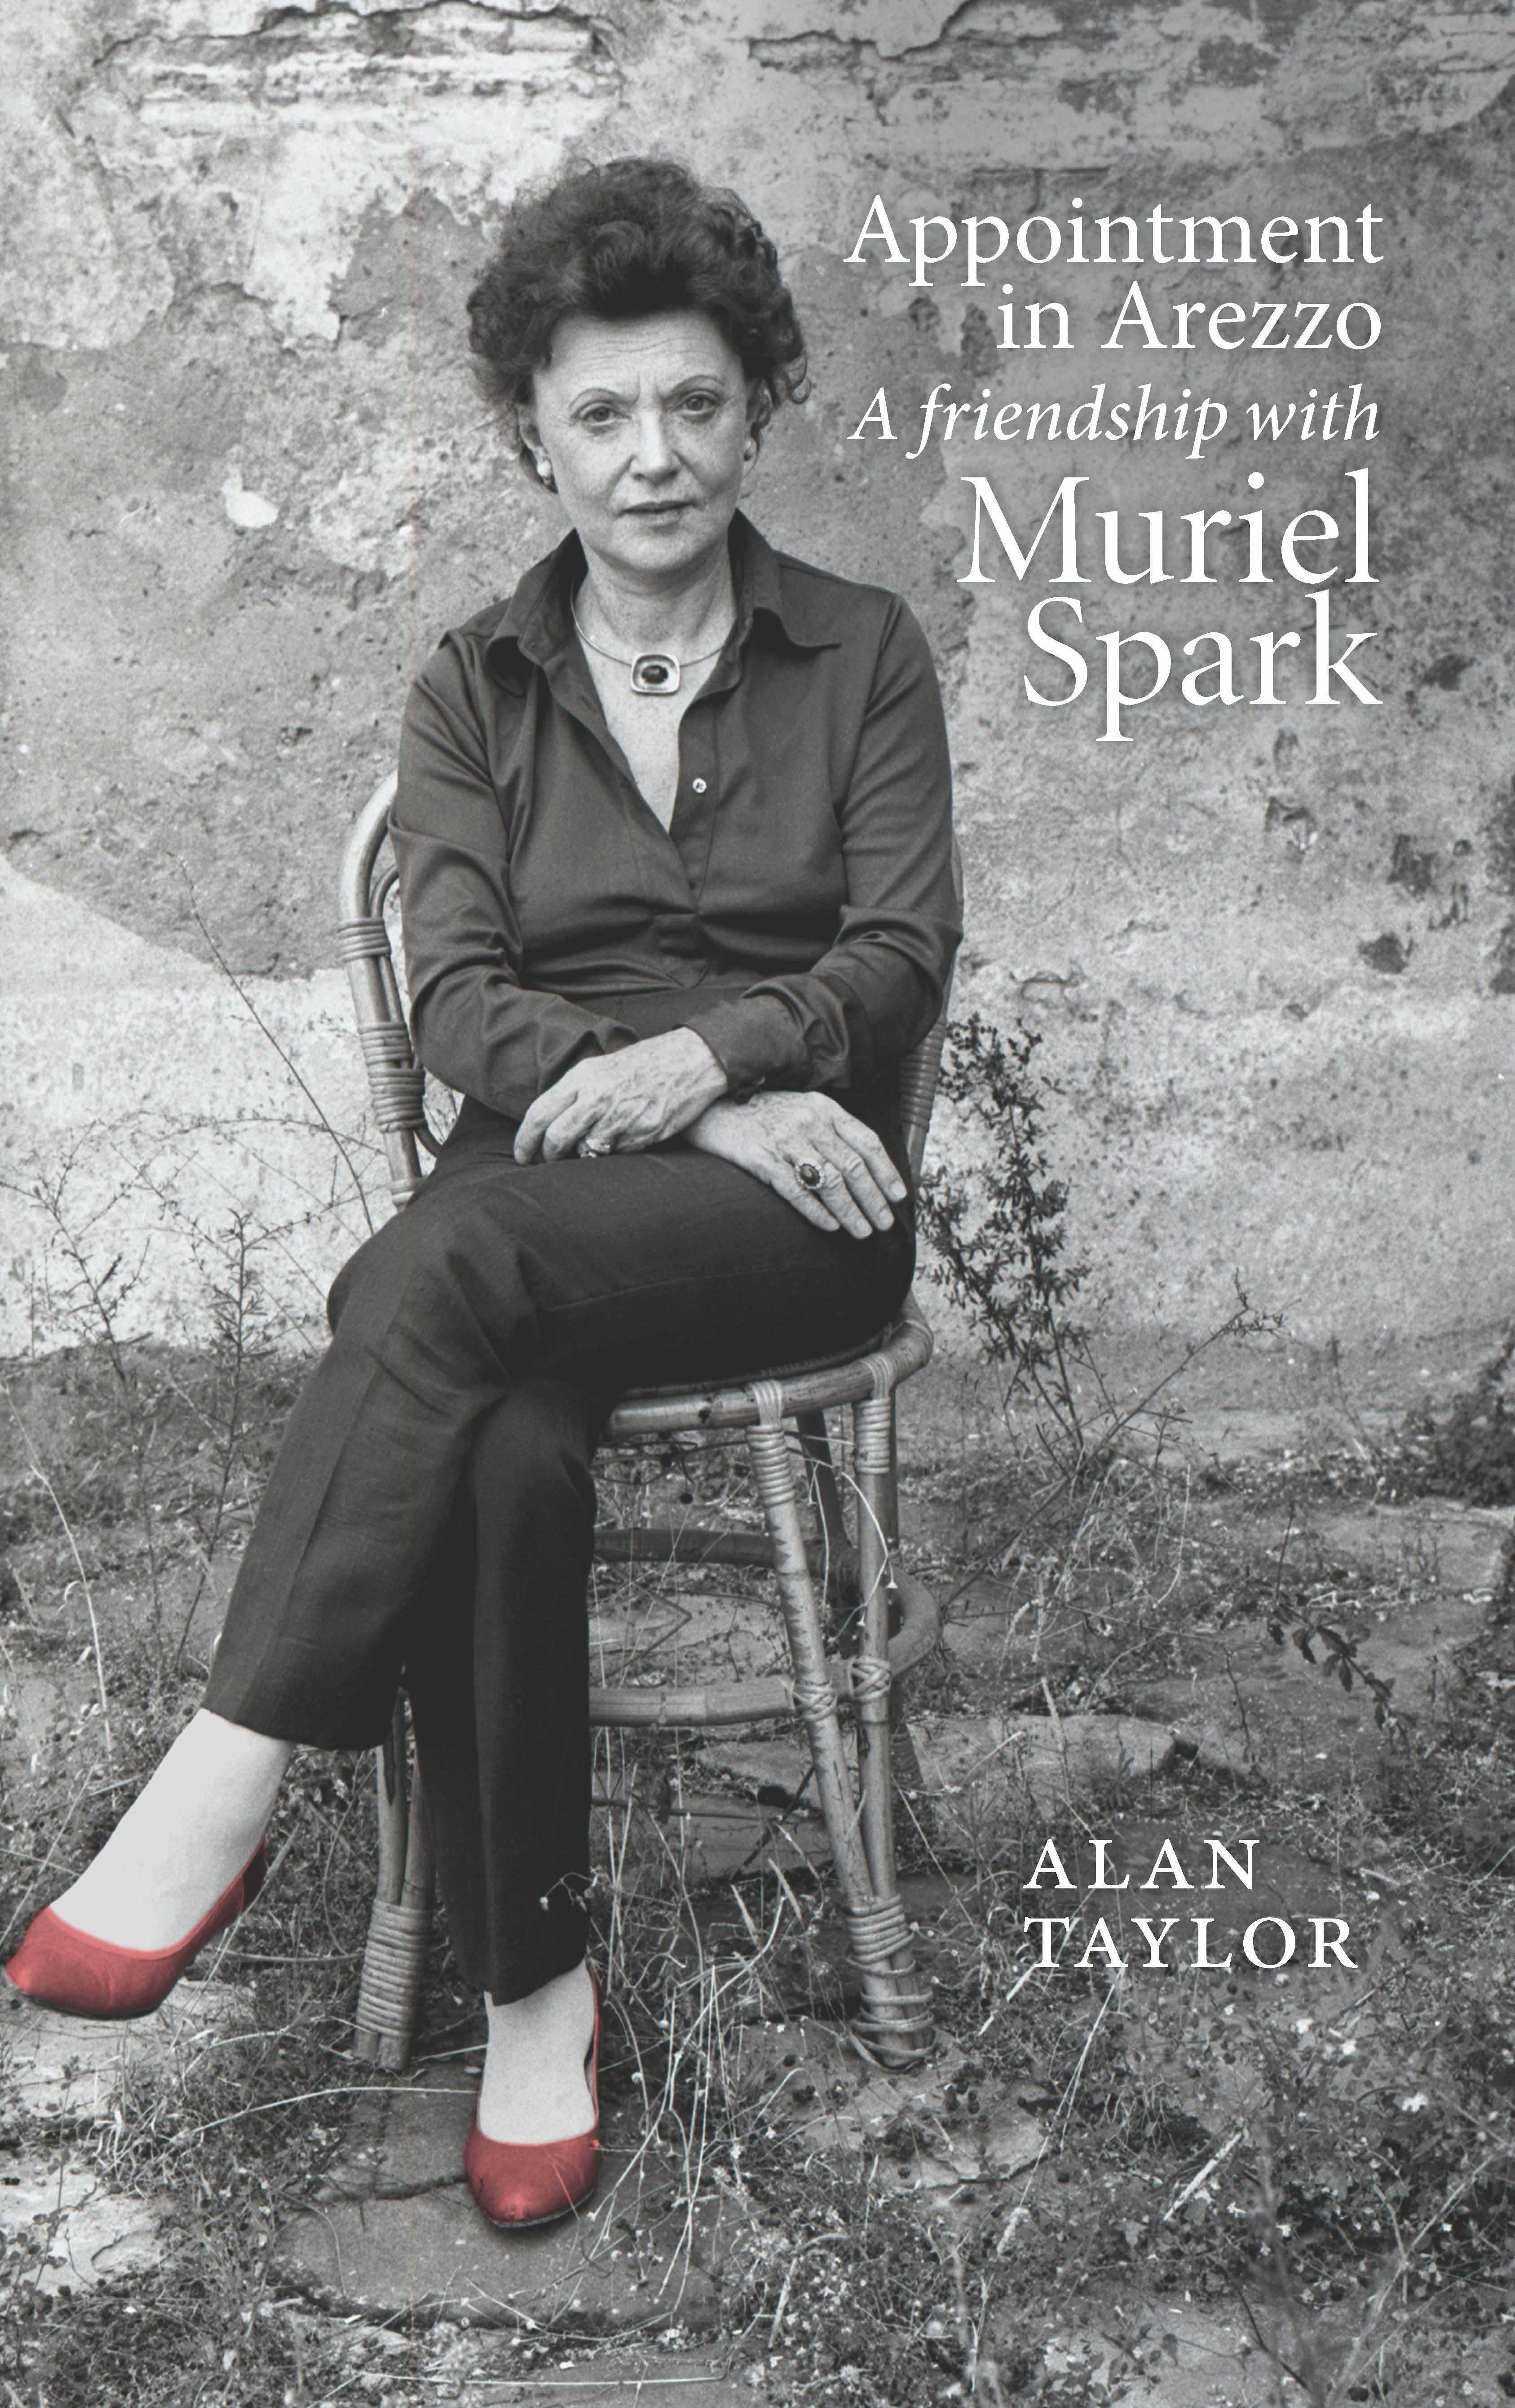 Image of Muriel Spark seated